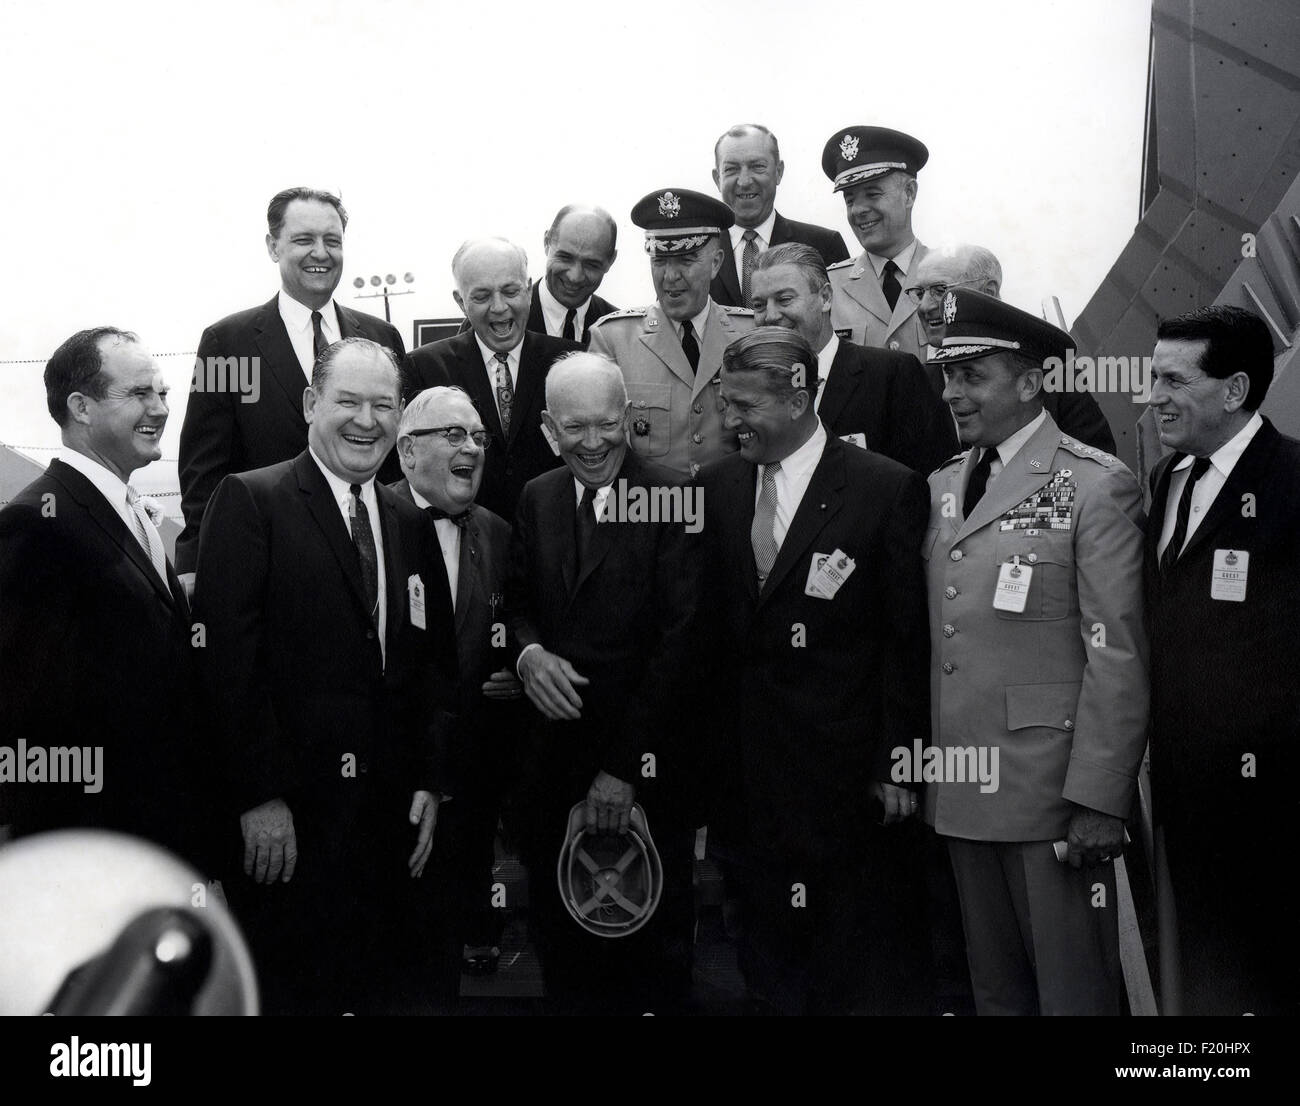 U.S. President Dwight Eisenhower stands with officials during the Dedication of the Marshall Space Flight Center - Stock Image